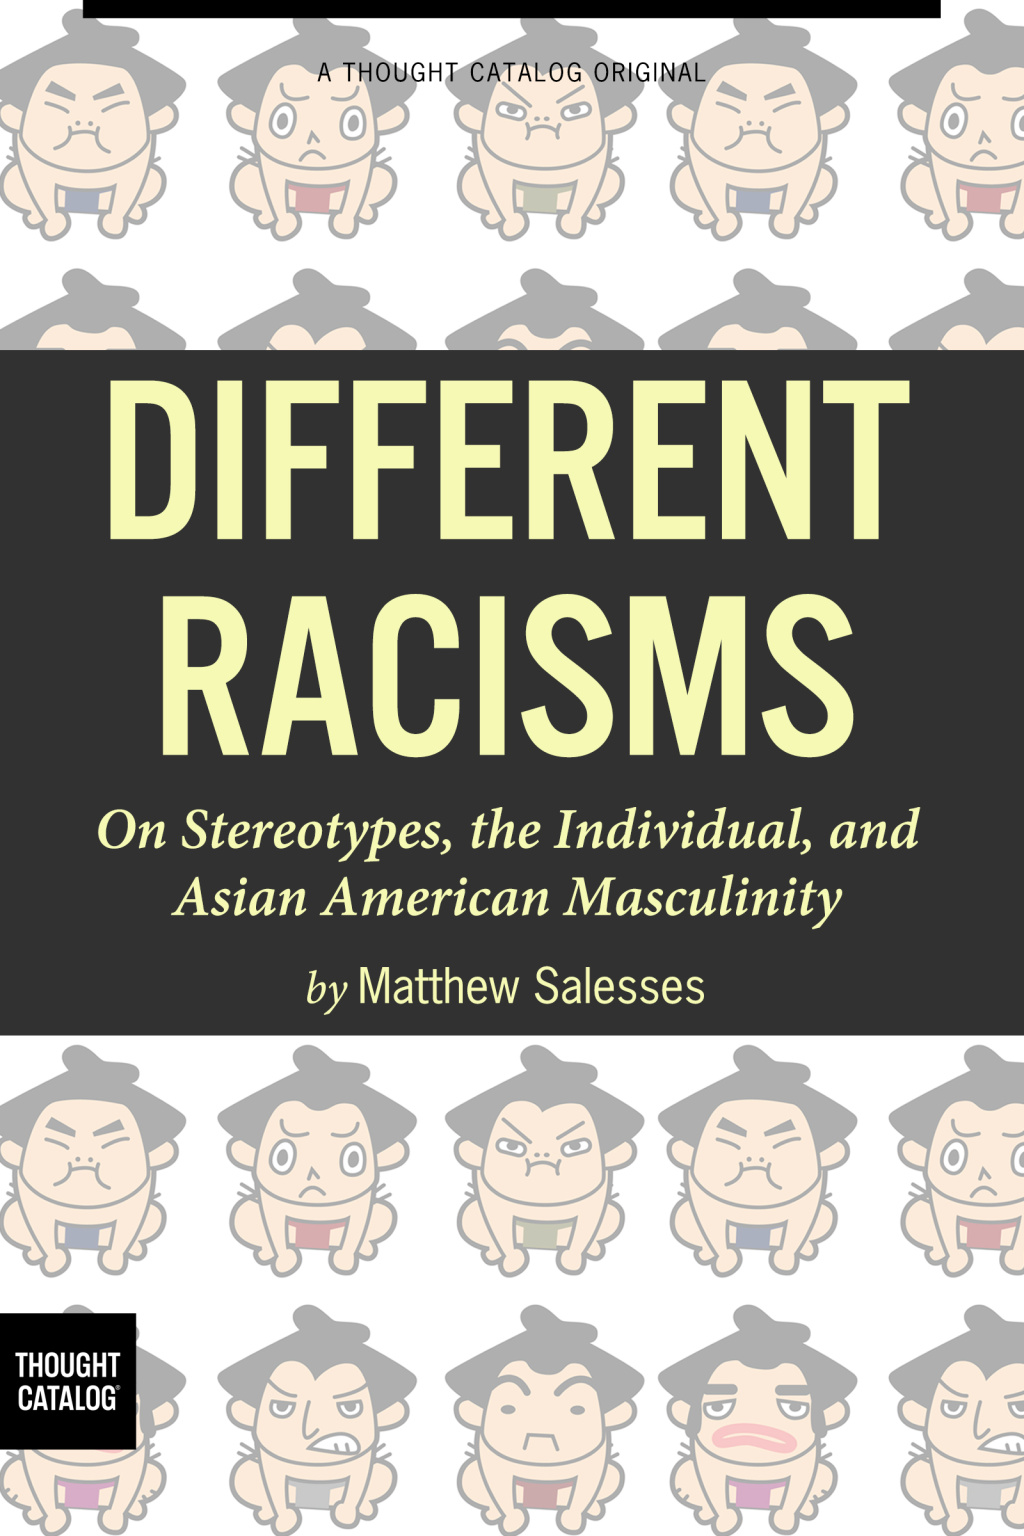 Different Racisms On Stereotypes, the Individual, and Asian American Masculinit.jpg